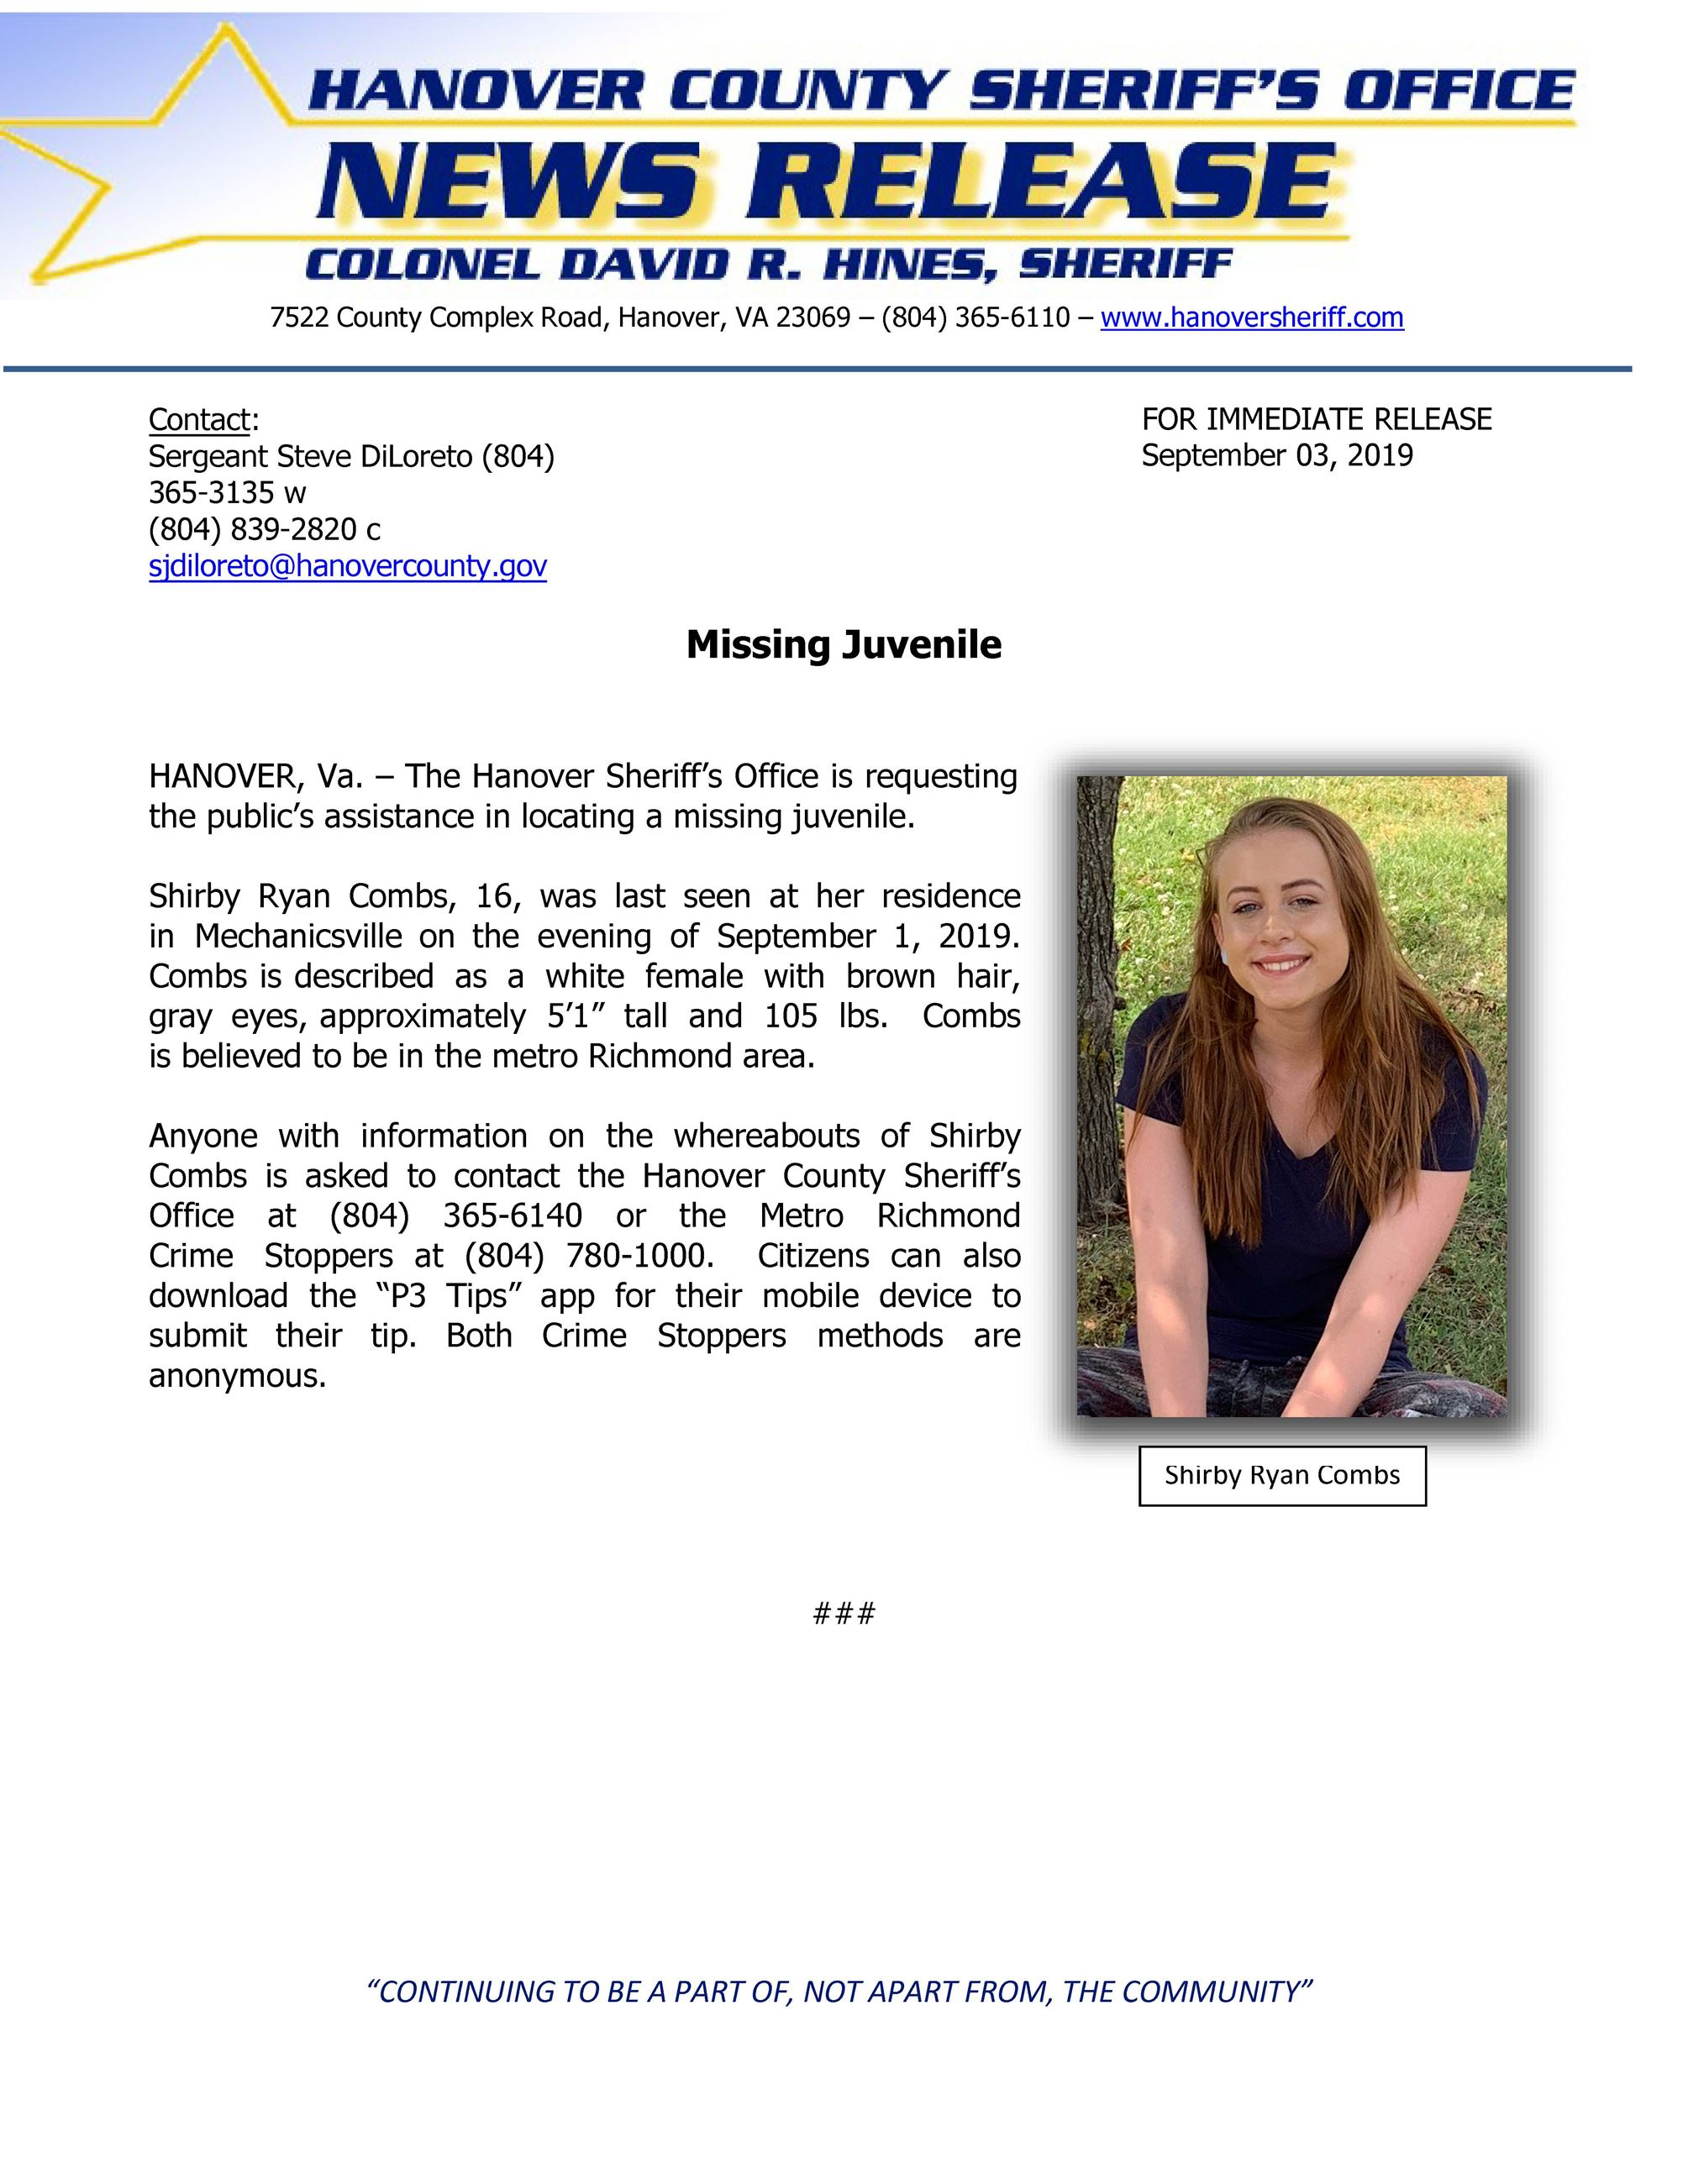 HCSO - Missing Juvenile Shirby Combs- September 3, 2019